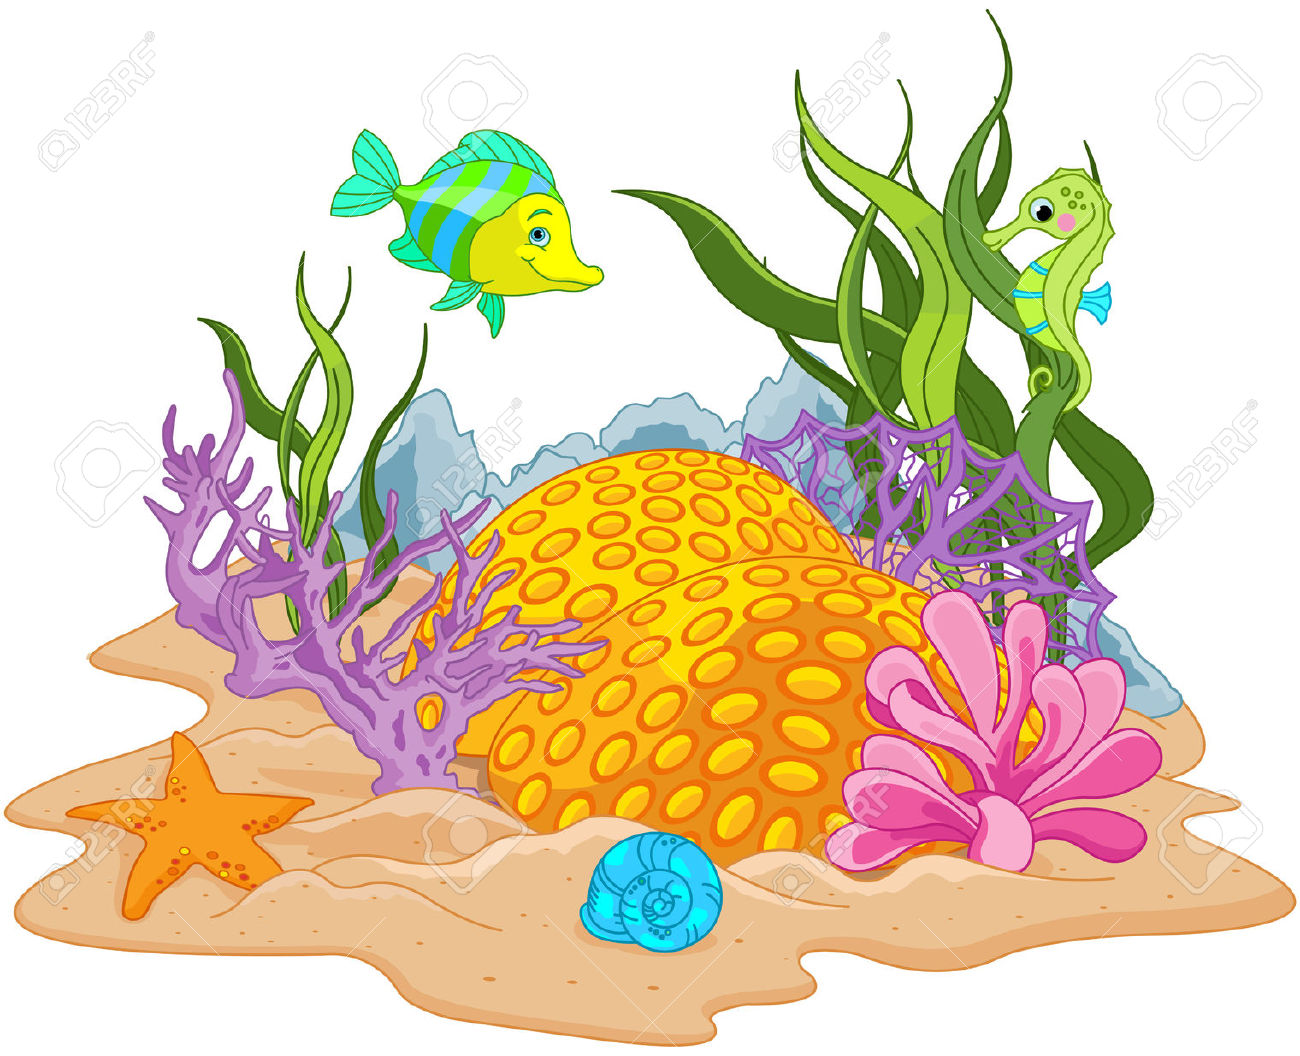 Sea Bed clipart #12, Download drawings